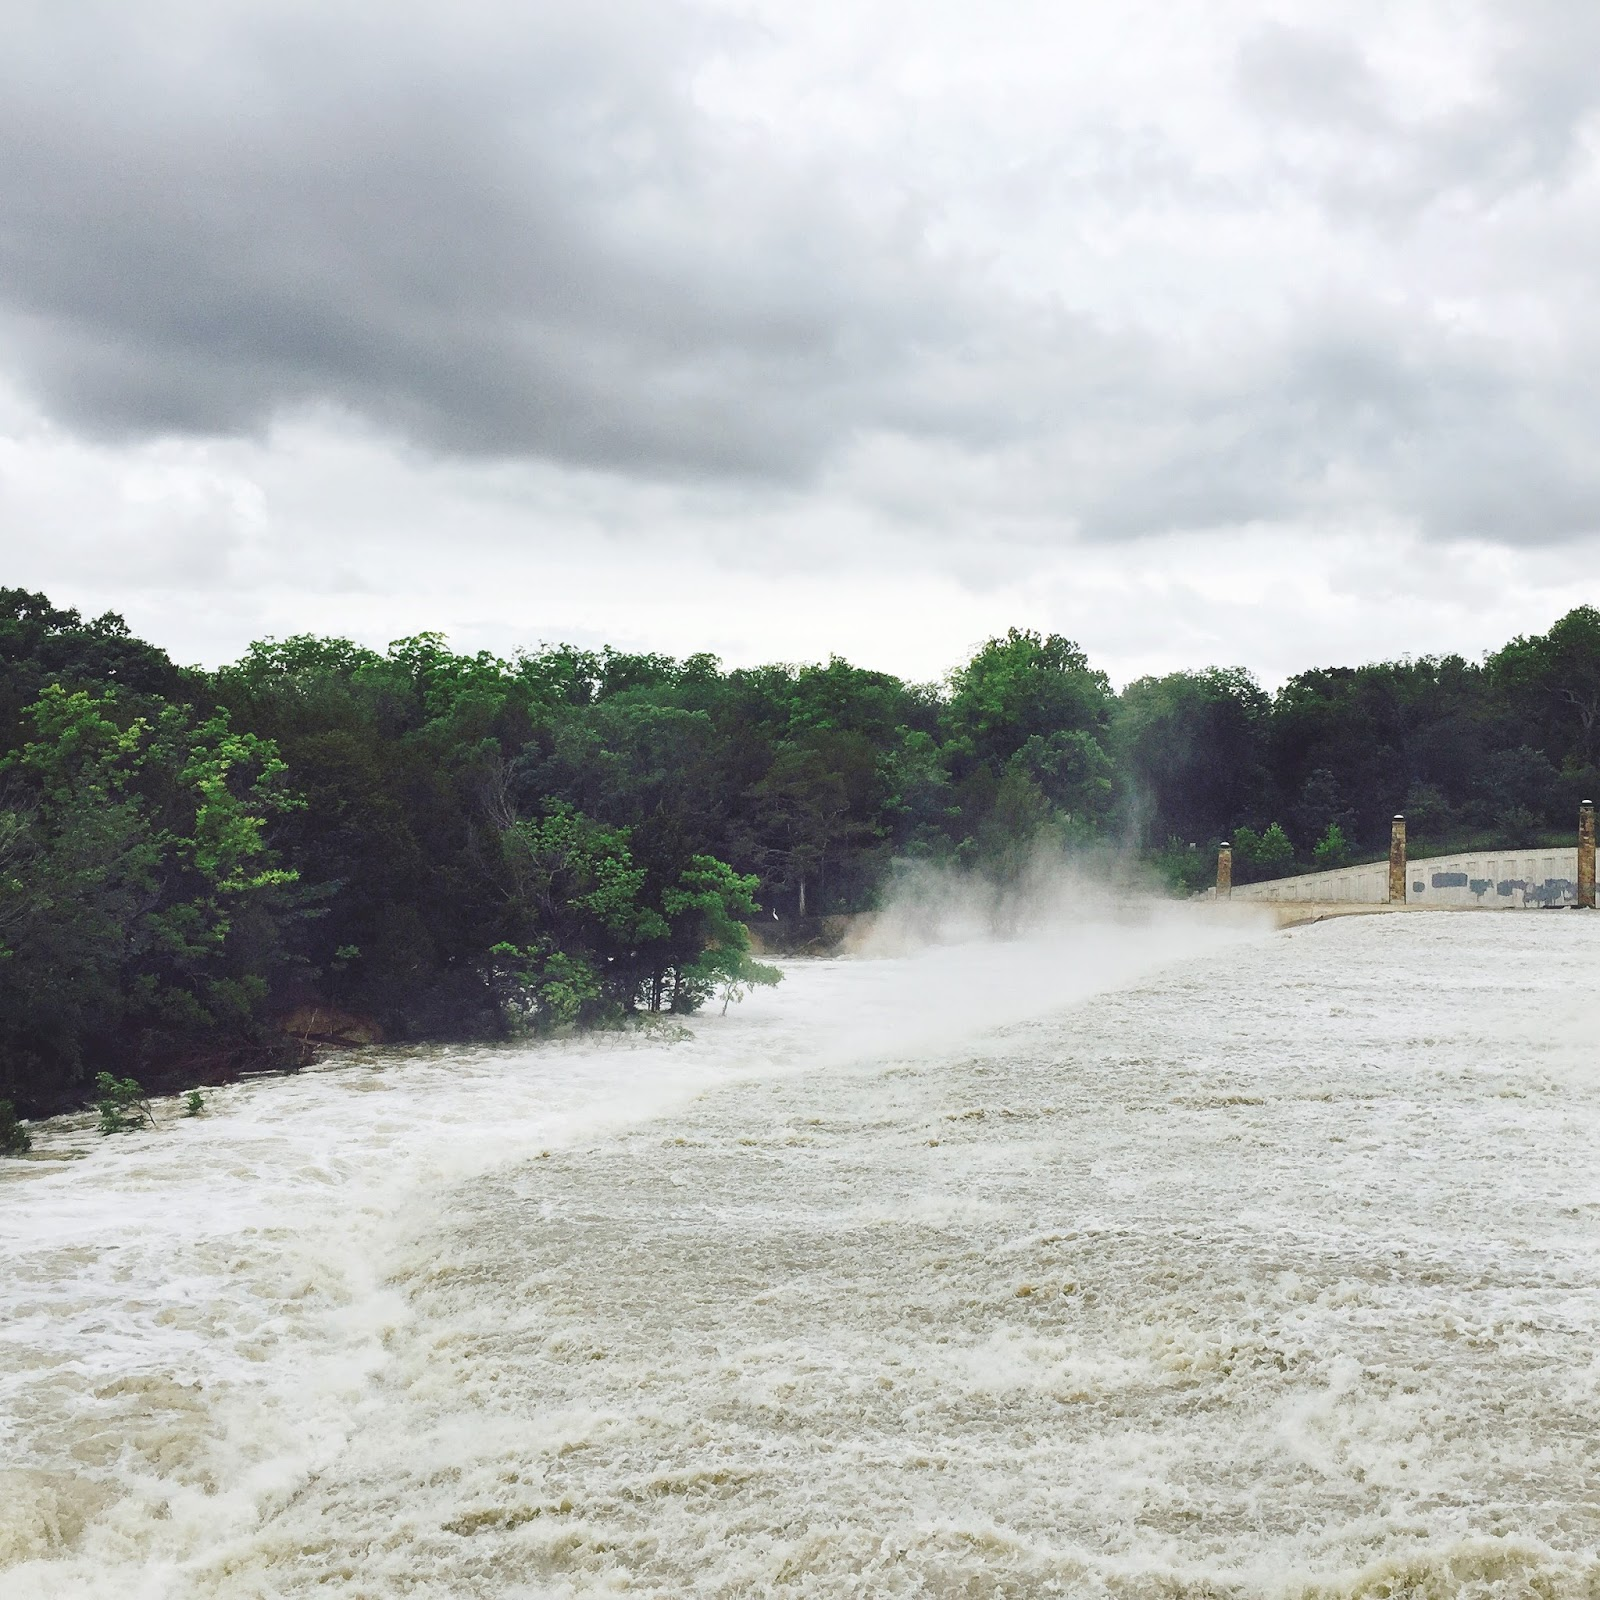 White rock lake spillway flooding